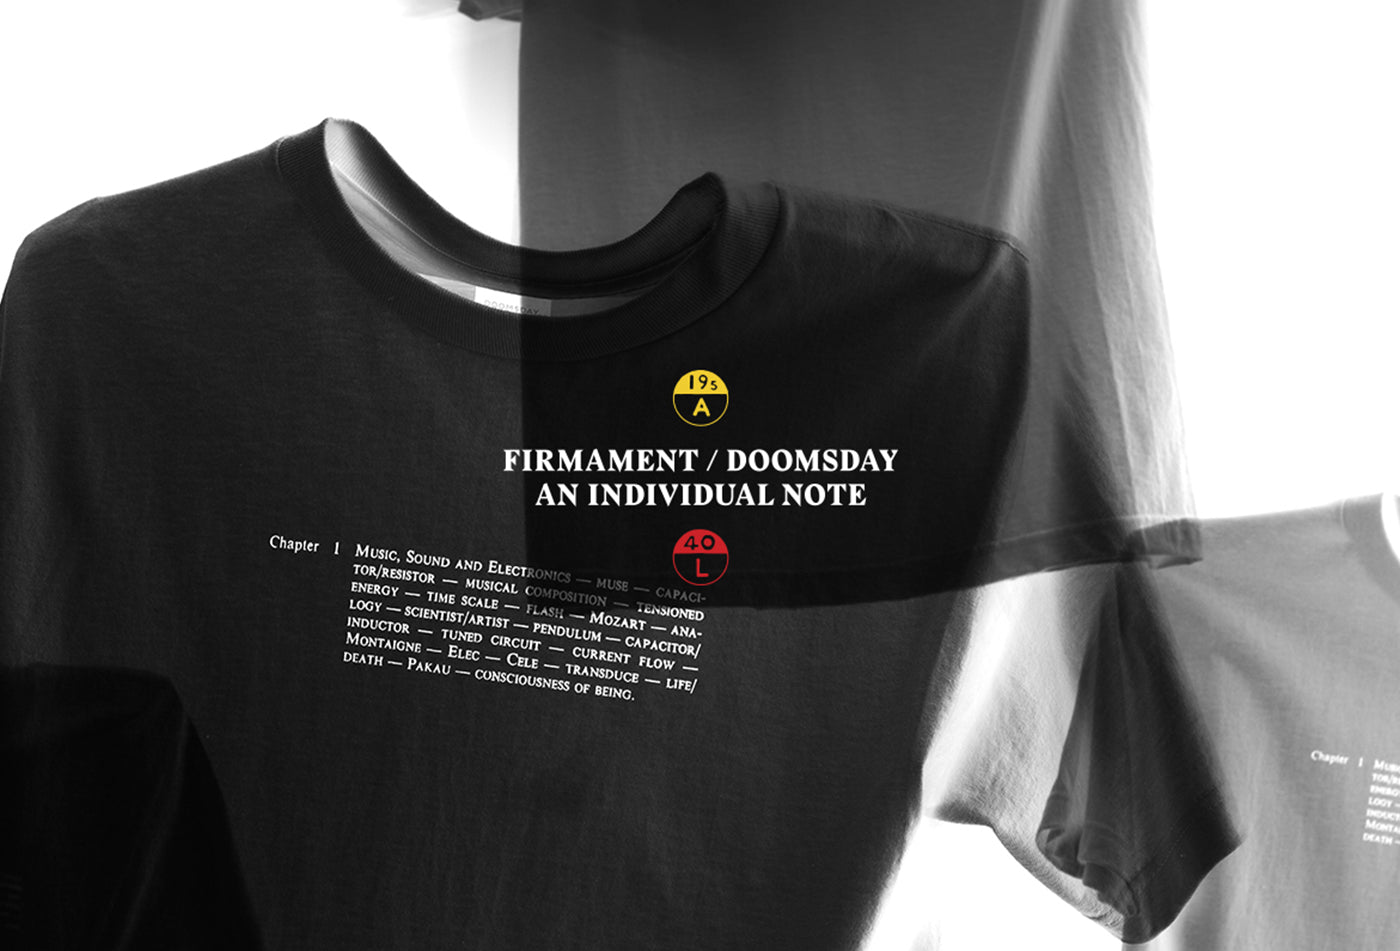 Firmament / Doomsday.<br>An Individual Note.